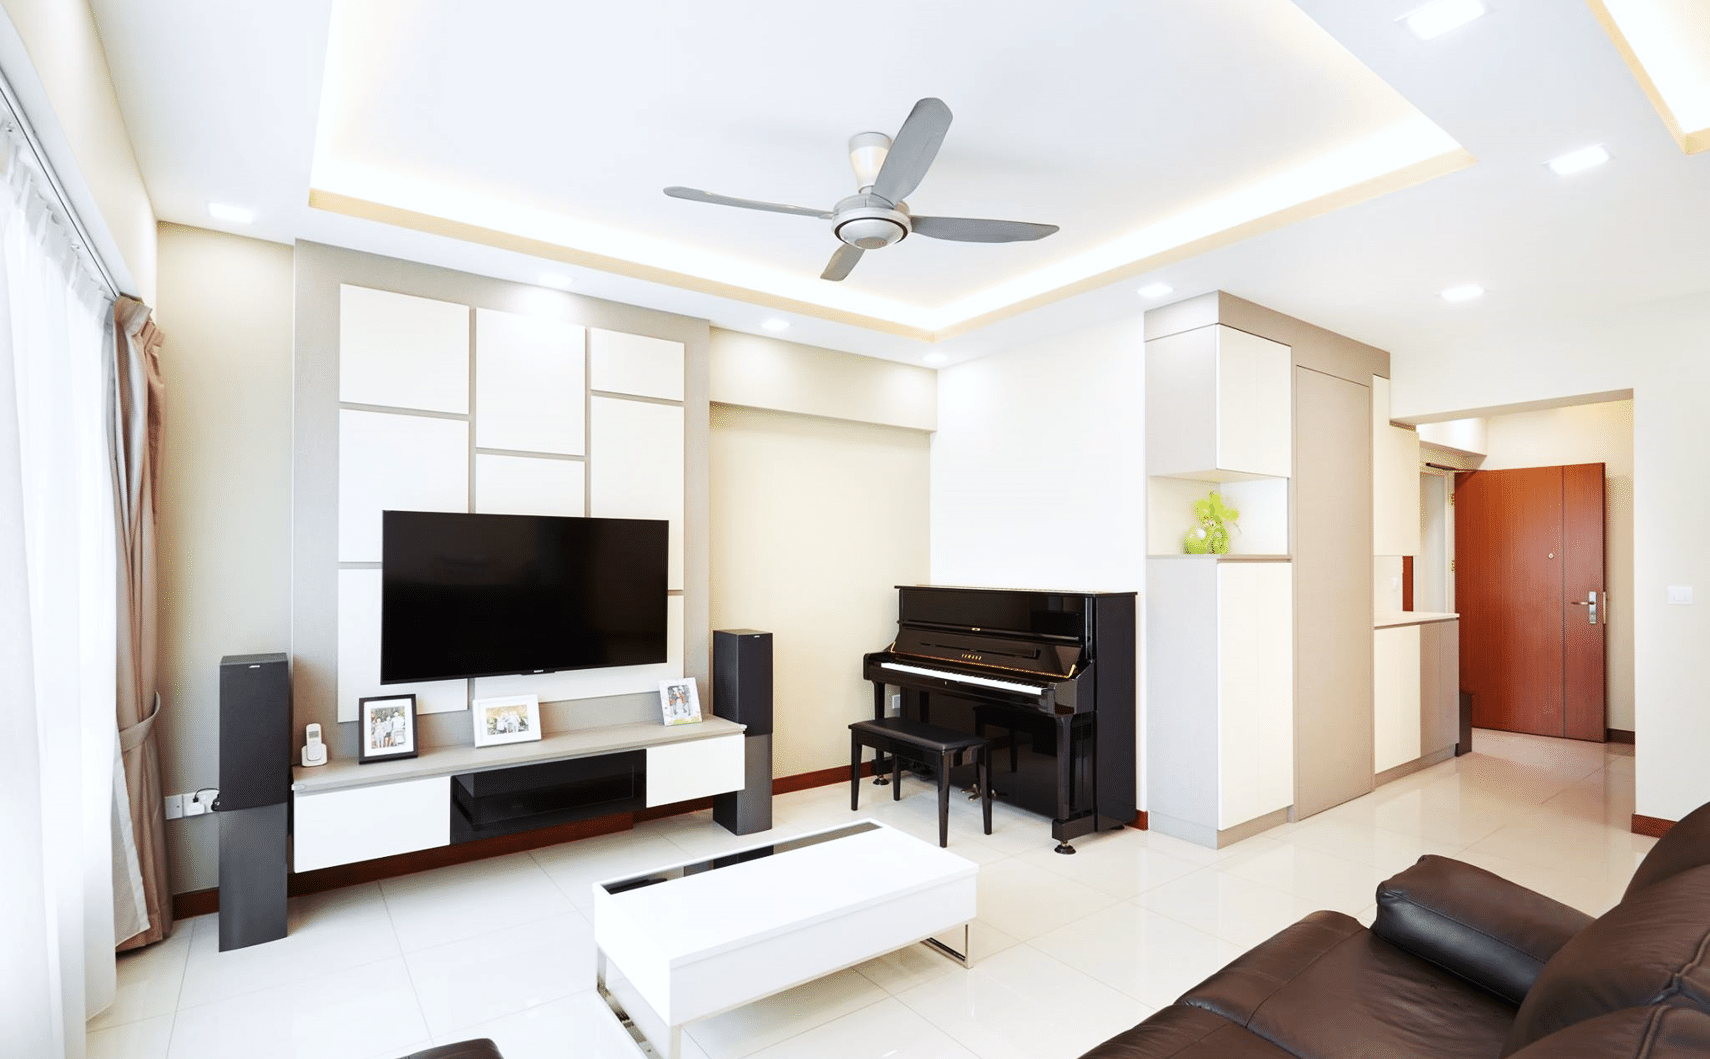 Home Room Interior Design And Custom Carpentry Singapore